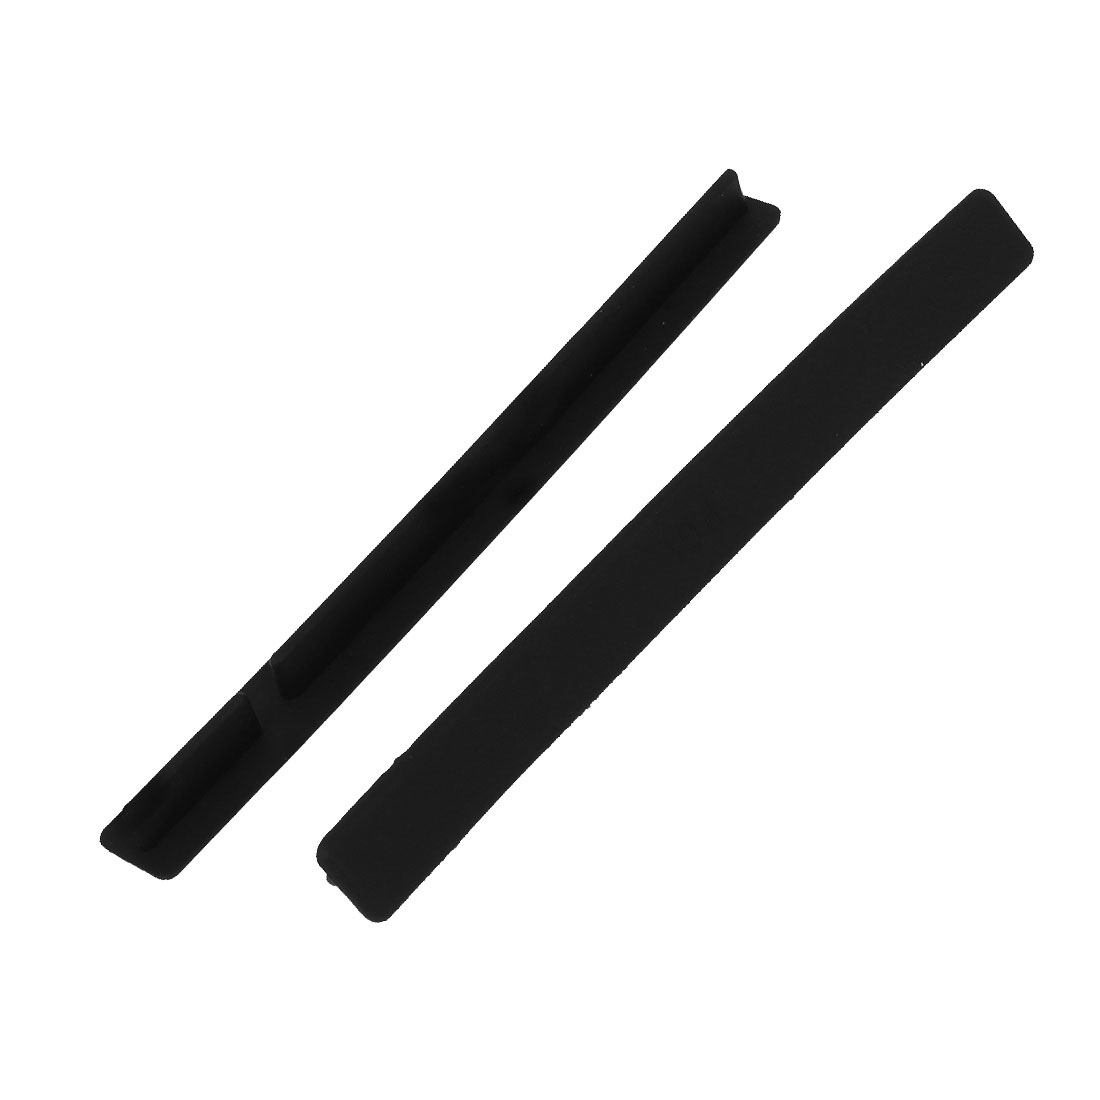 Silicone Conventional PCI Slot Anti-dust Plugs Cover Protector Black 2PCS